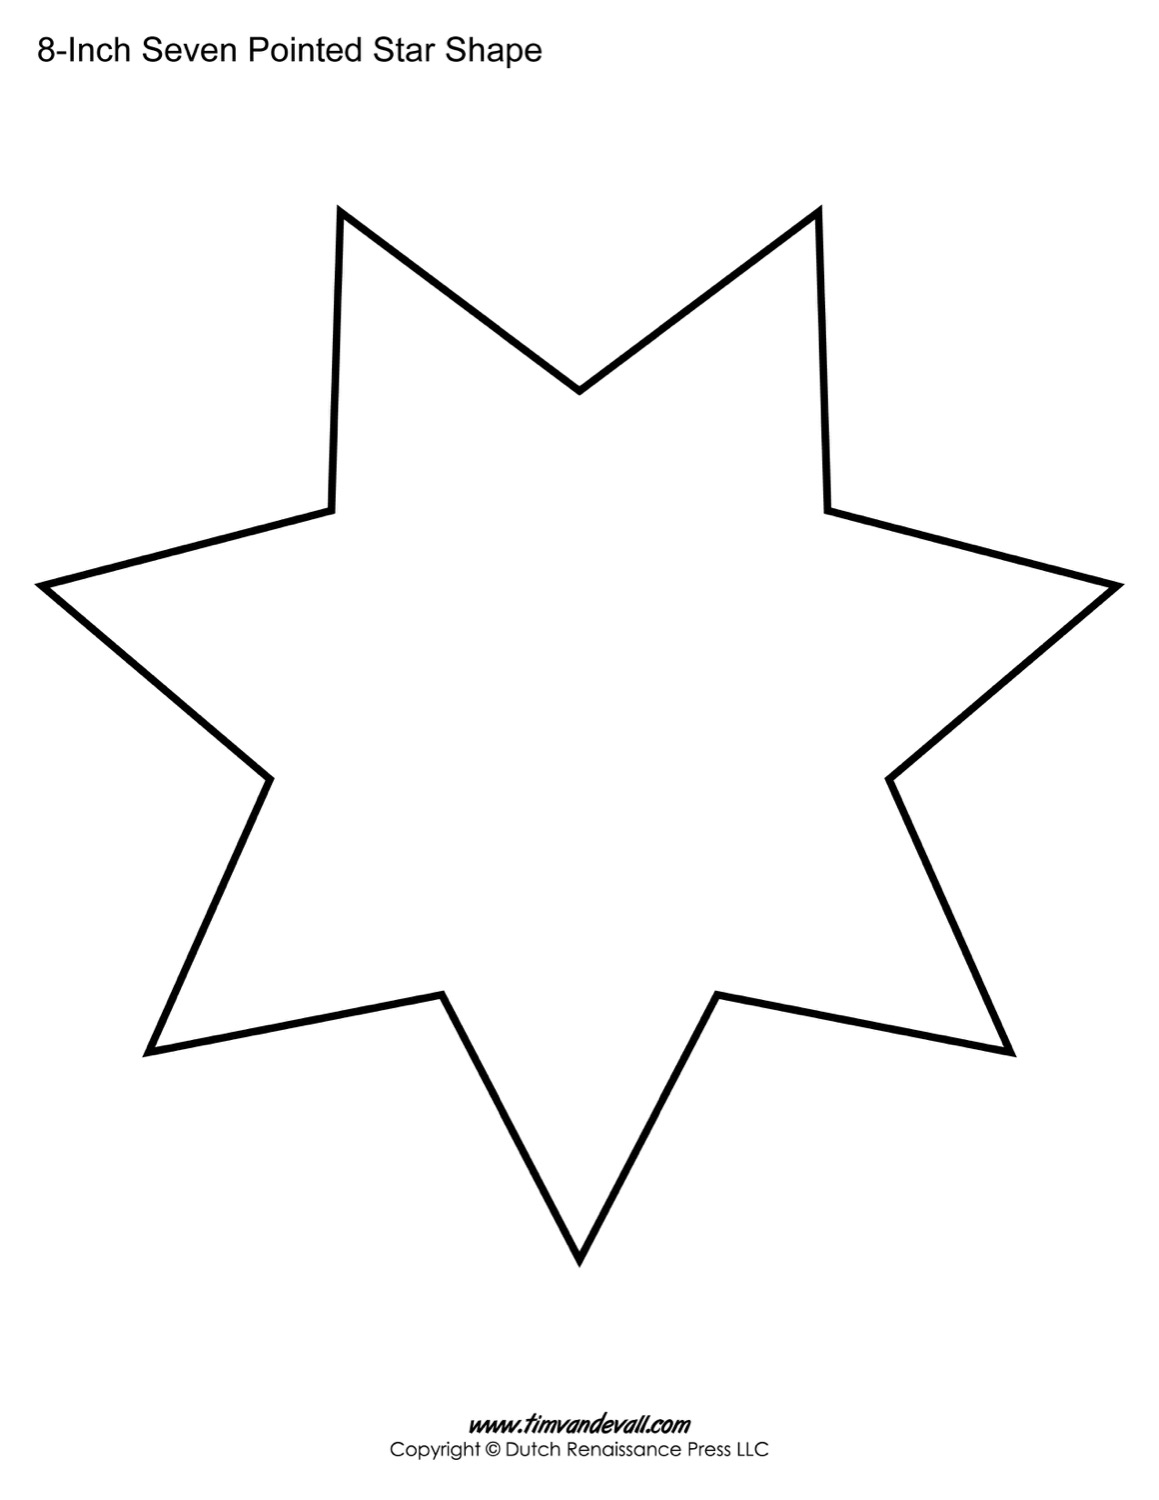 Seven pointed star shape templates blank printable shapes for How to draw a perfect star shape